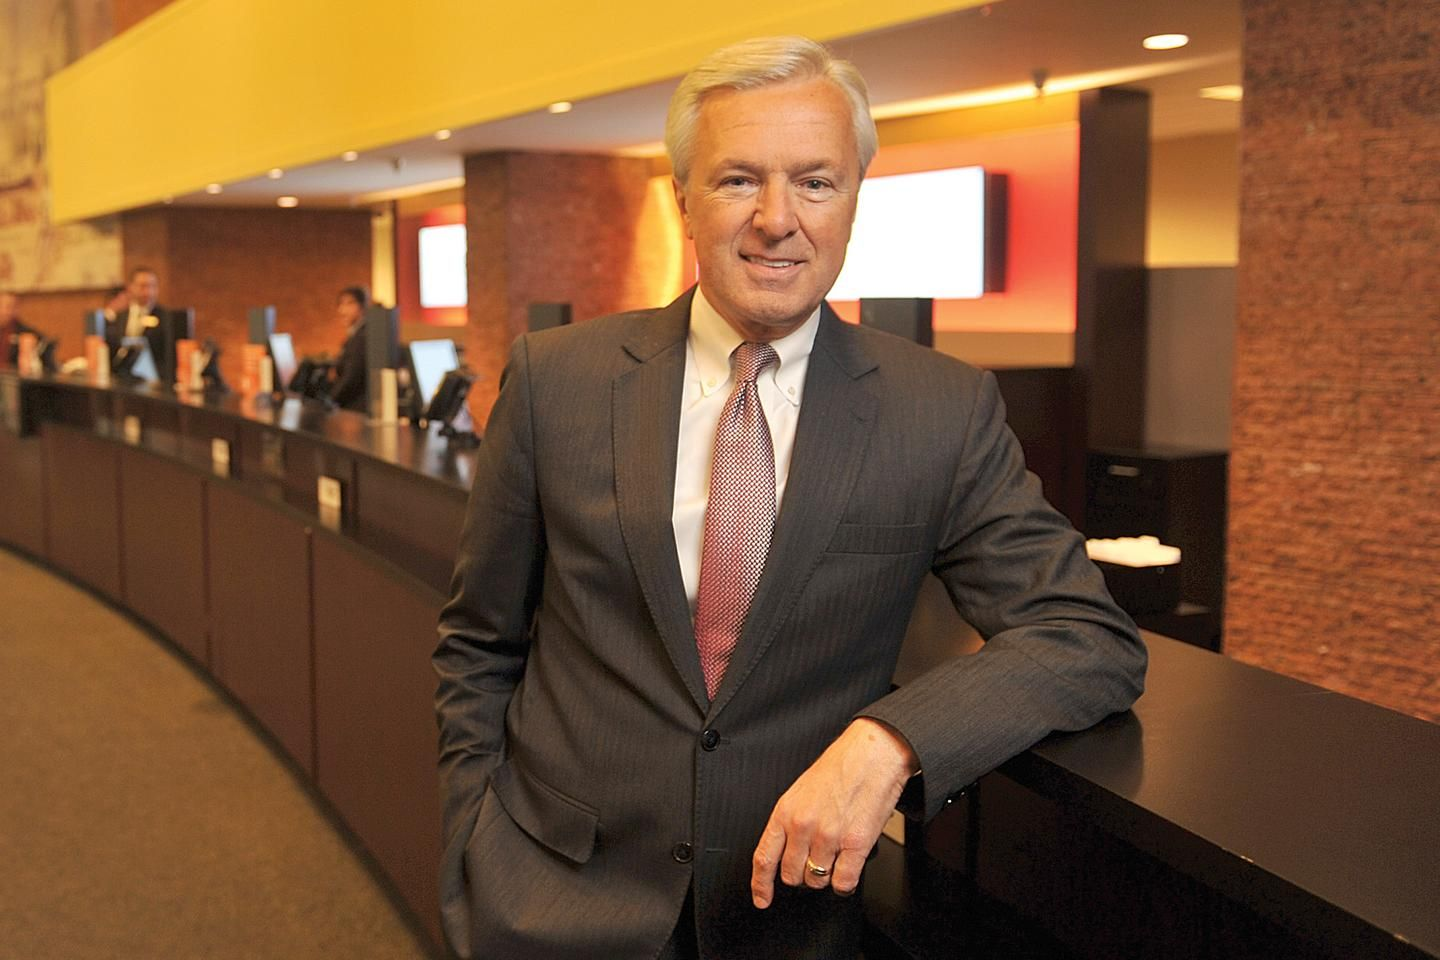 Wells Fargo CEO Banned From Banking, To Pay $17.5 Million In Fines